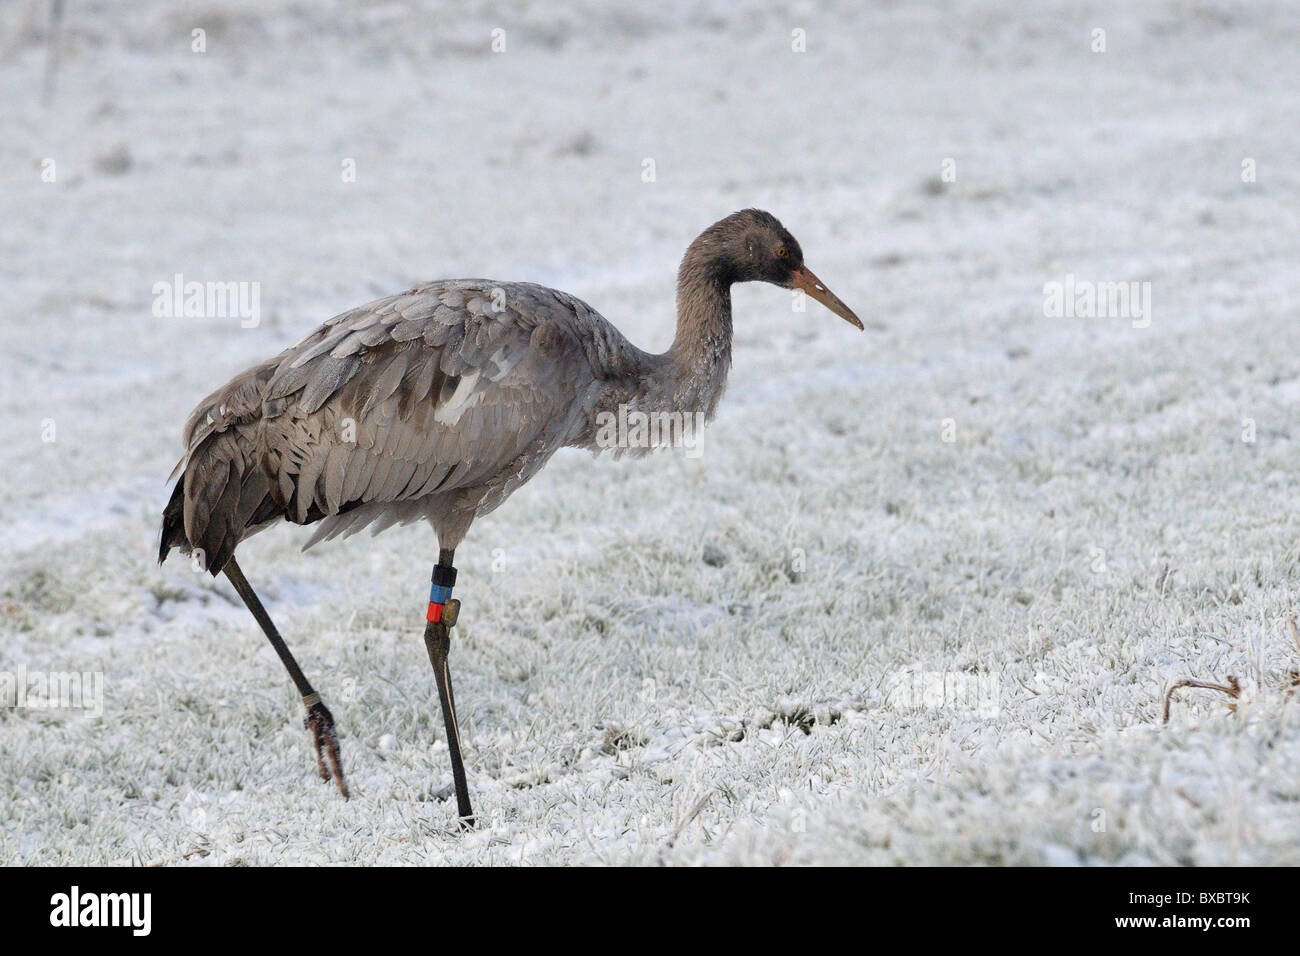 Juvenile Common / Eurasian crane (Grus grus) with hoar-frosted feathers, walks on frozen snow covered pastureland. - Stock Image